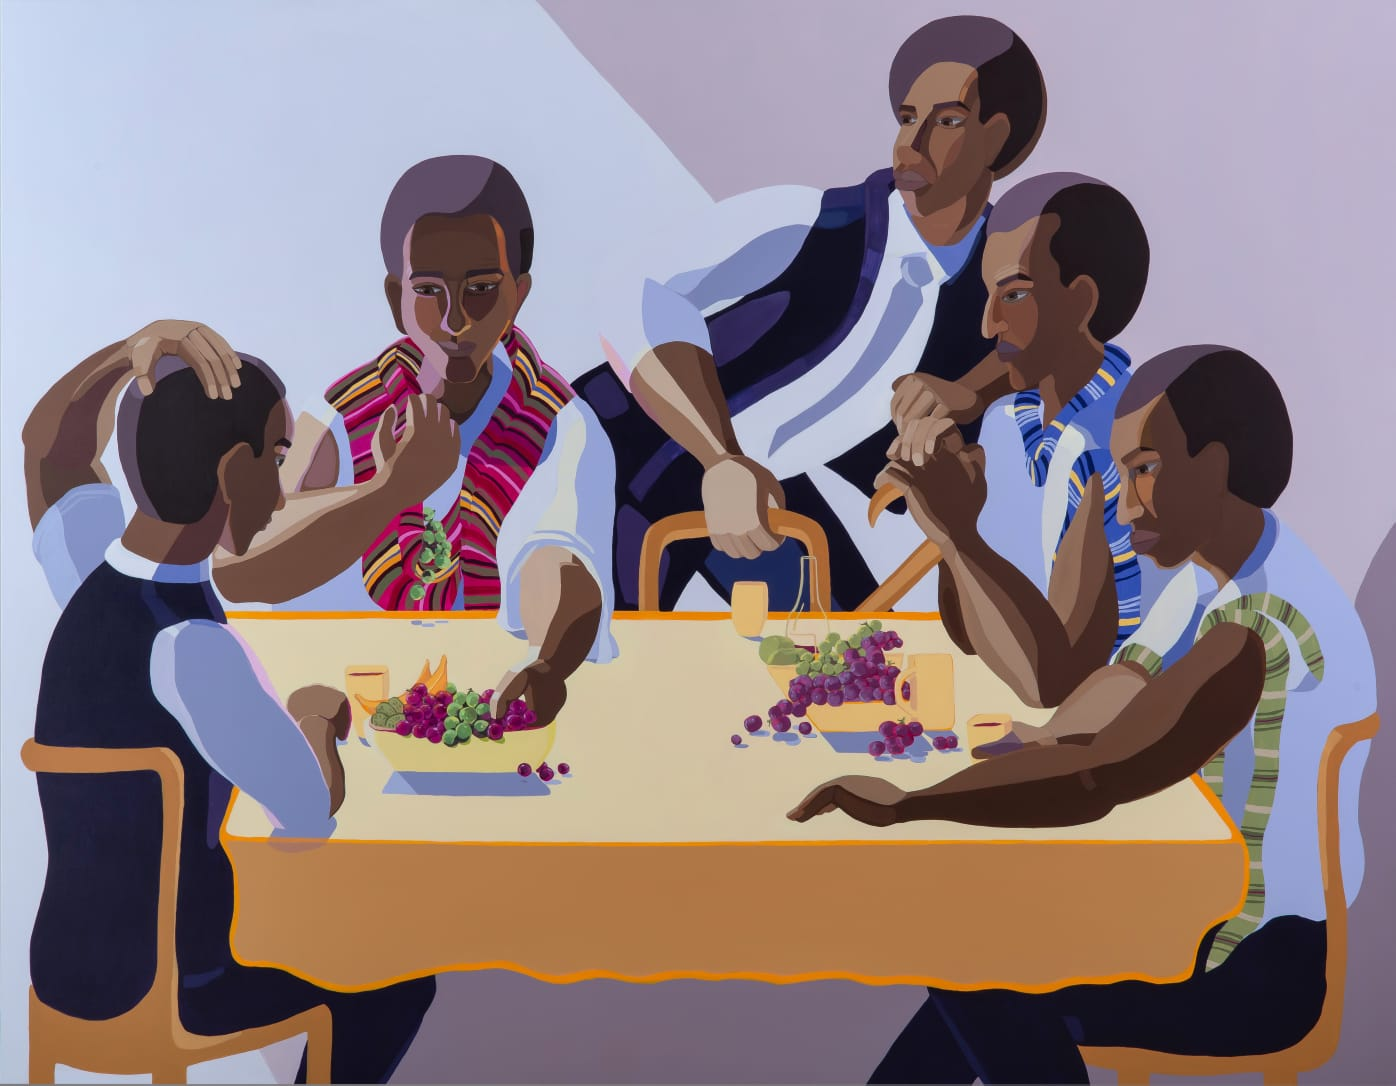 Nirit Takele, The invited guest, 2018, Acrylic on canvas, 165x210 cm